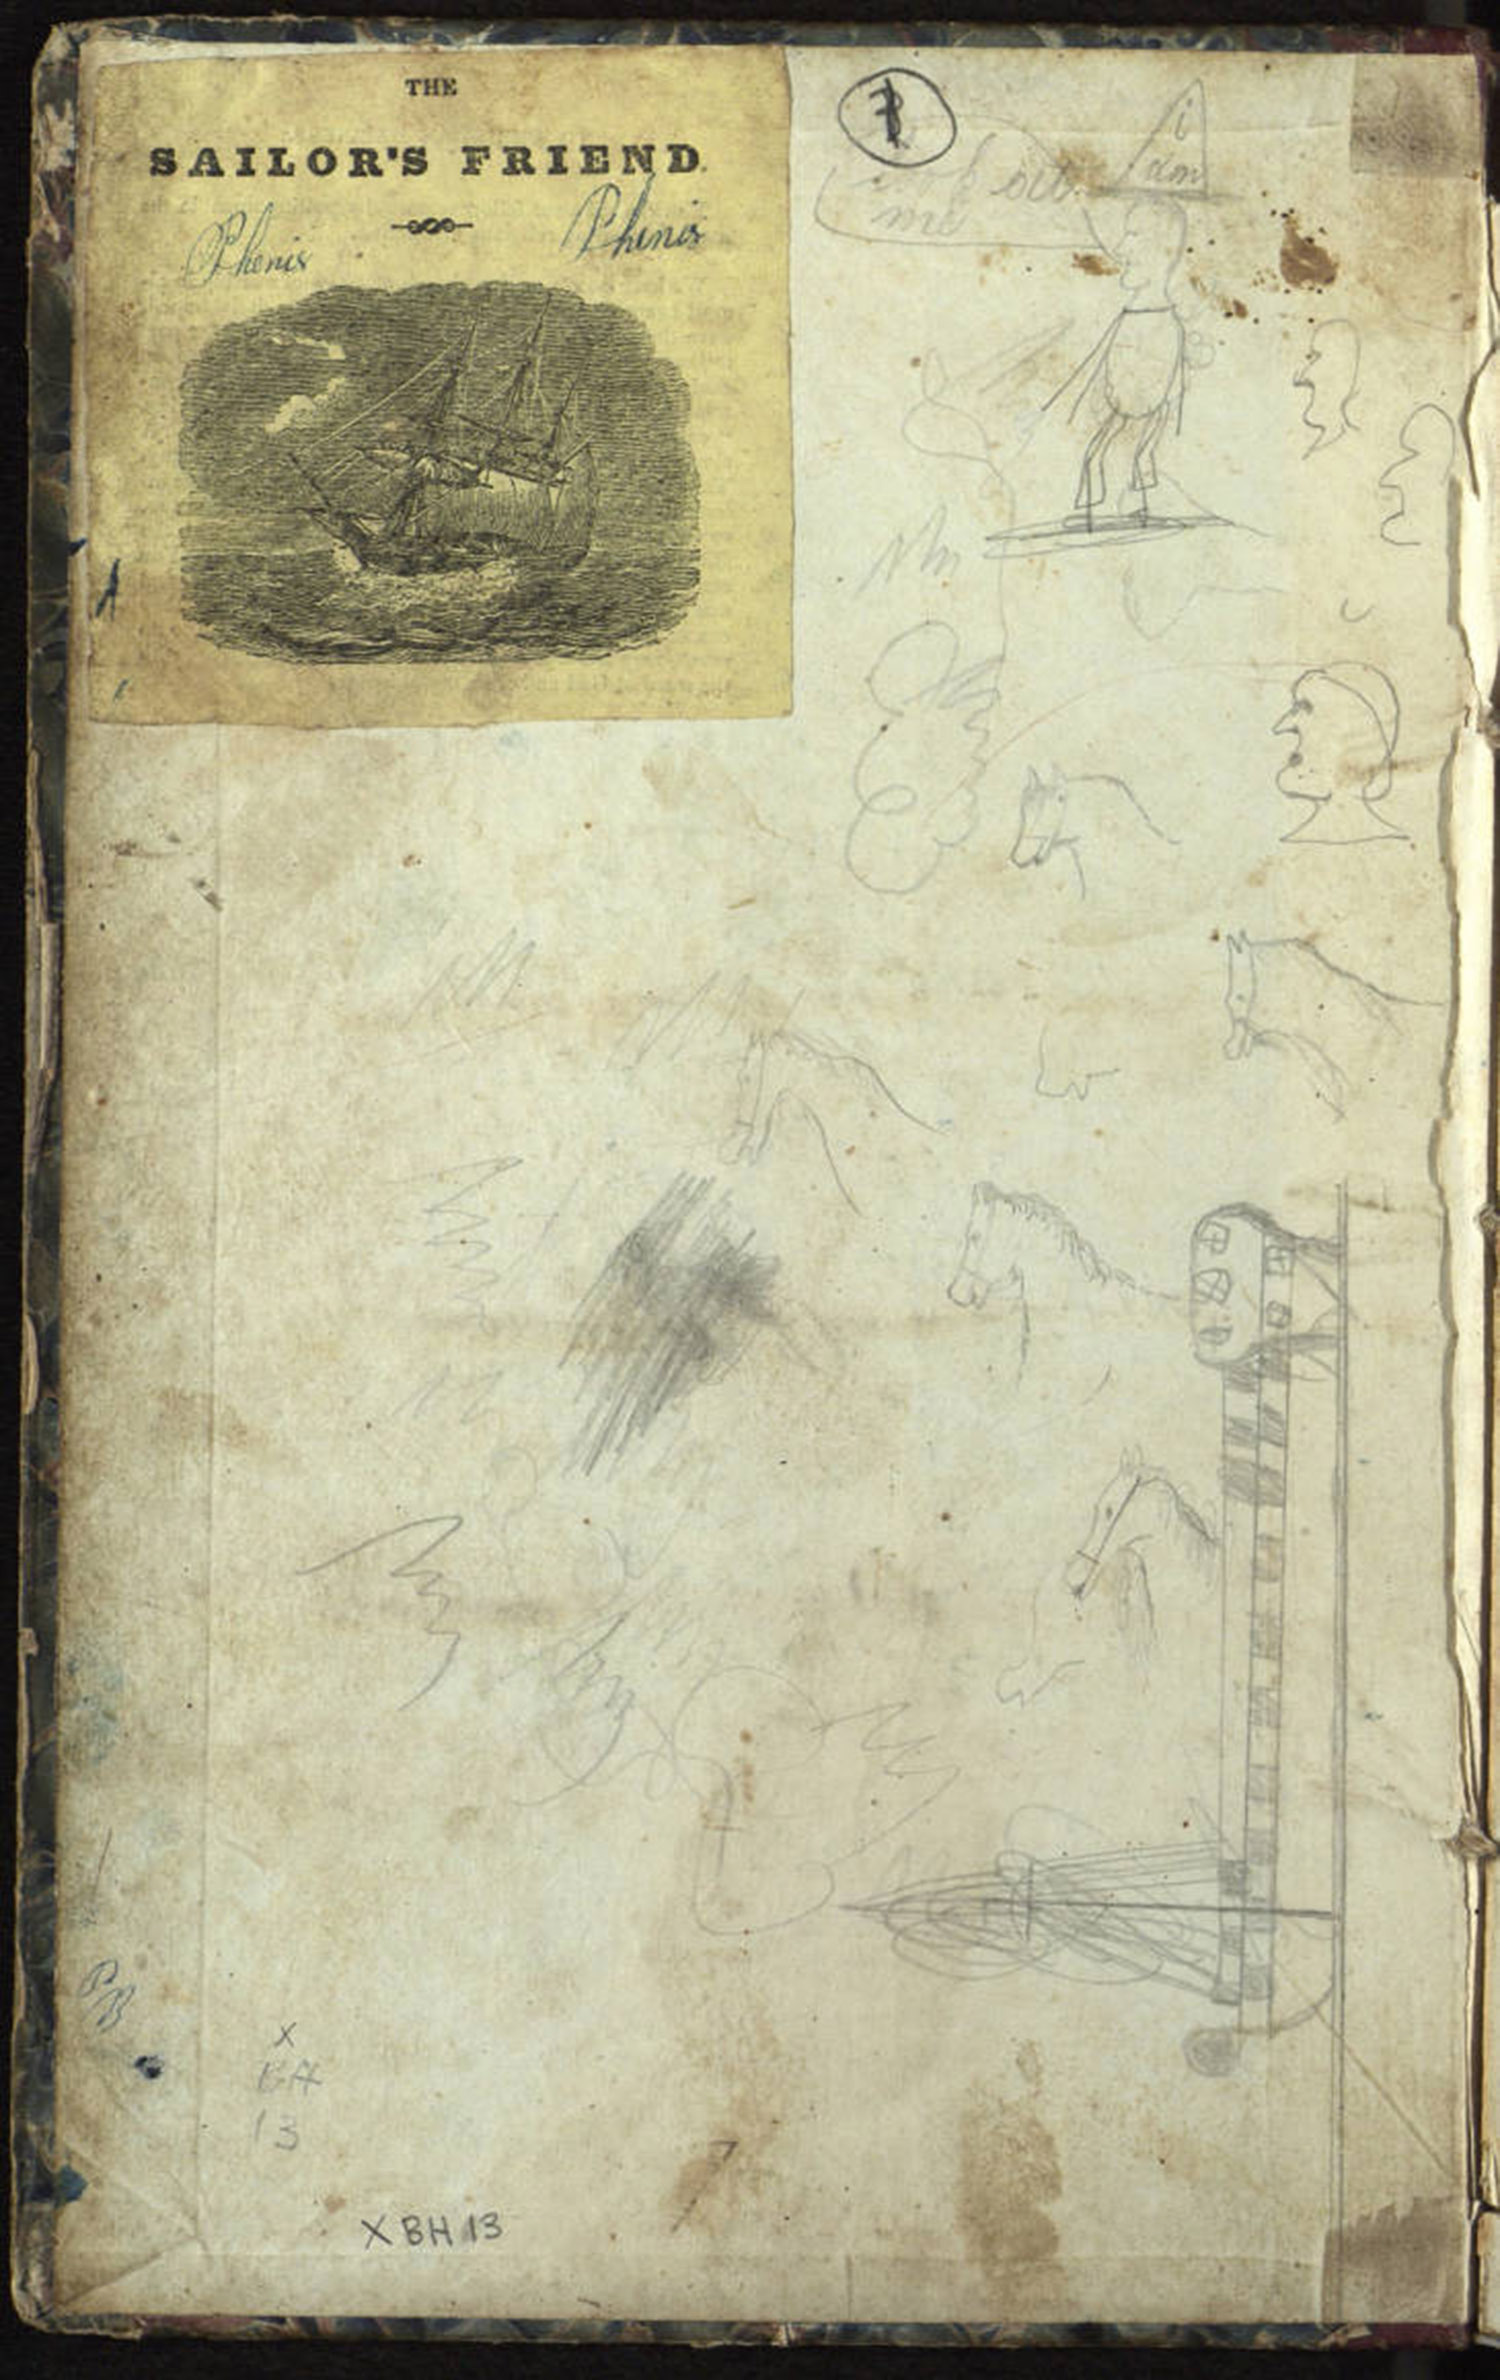 Pages from the whaling ship Phenix, on a voyage from Sag Harbor to the Northwest Coast, 10 October 1844 to 5 June 1847 (dates contained in this journal are 10 October 1845 - 4 July 1846, 10 March 1847 - 13 March 1847); owned by Cook & Green, commanded by Captain Samuel Percival Briggs. Journal abruptly ends, briefly picked up again for a few days in March 1847. The rest of the log contains  poems and sketches of buildings a schoolhouse in East Hampton  and churches in East Hampton and Sag Harbor.   COURTESY  EAST HAMPTON LIBRARY, LONG ISLAND COLLECTION